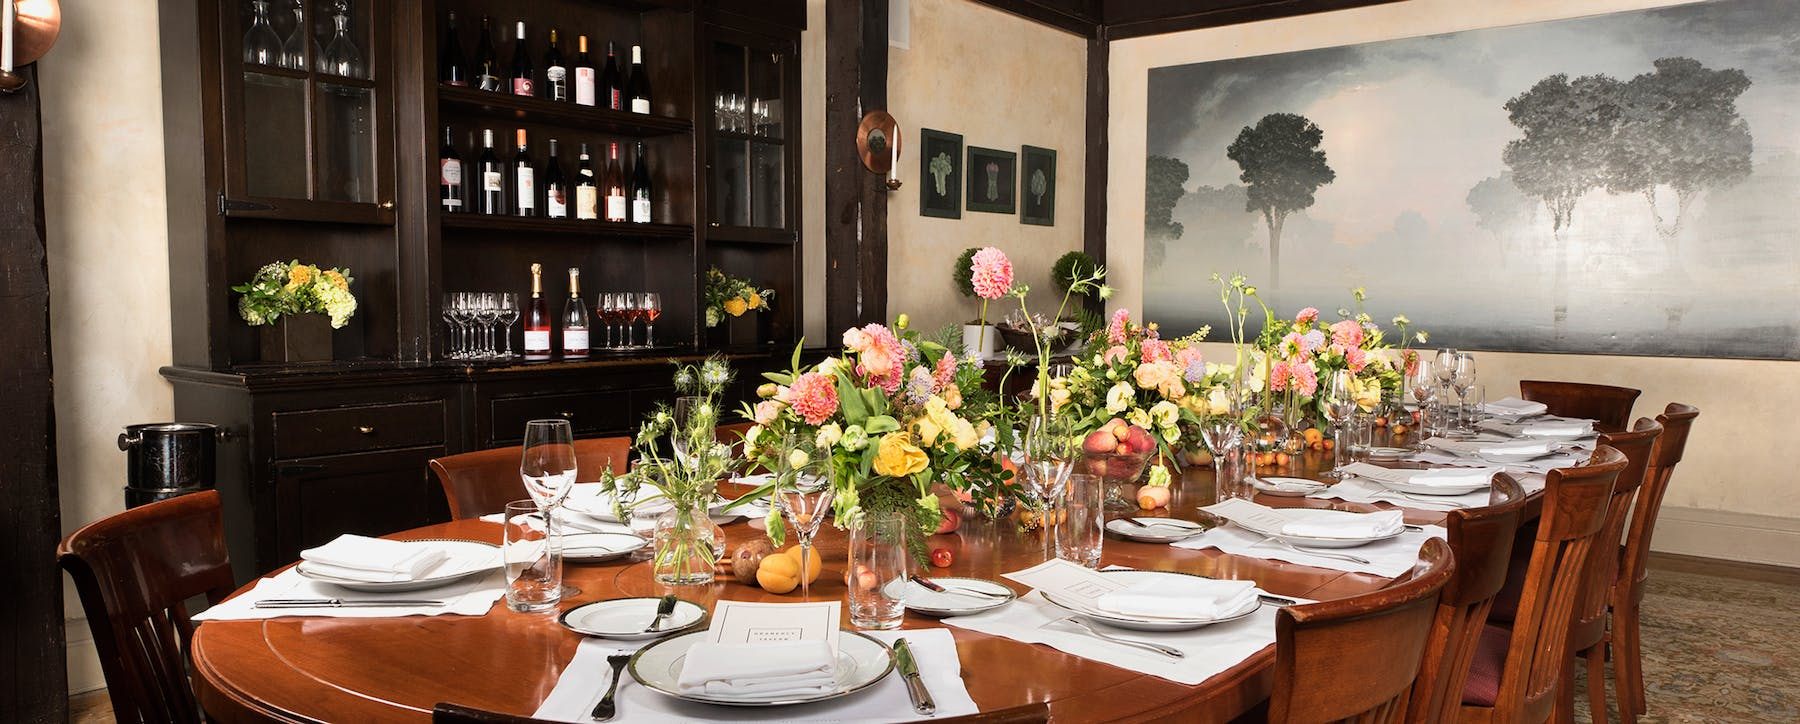 Private Dining | Seasonal Fine Dining in New York City